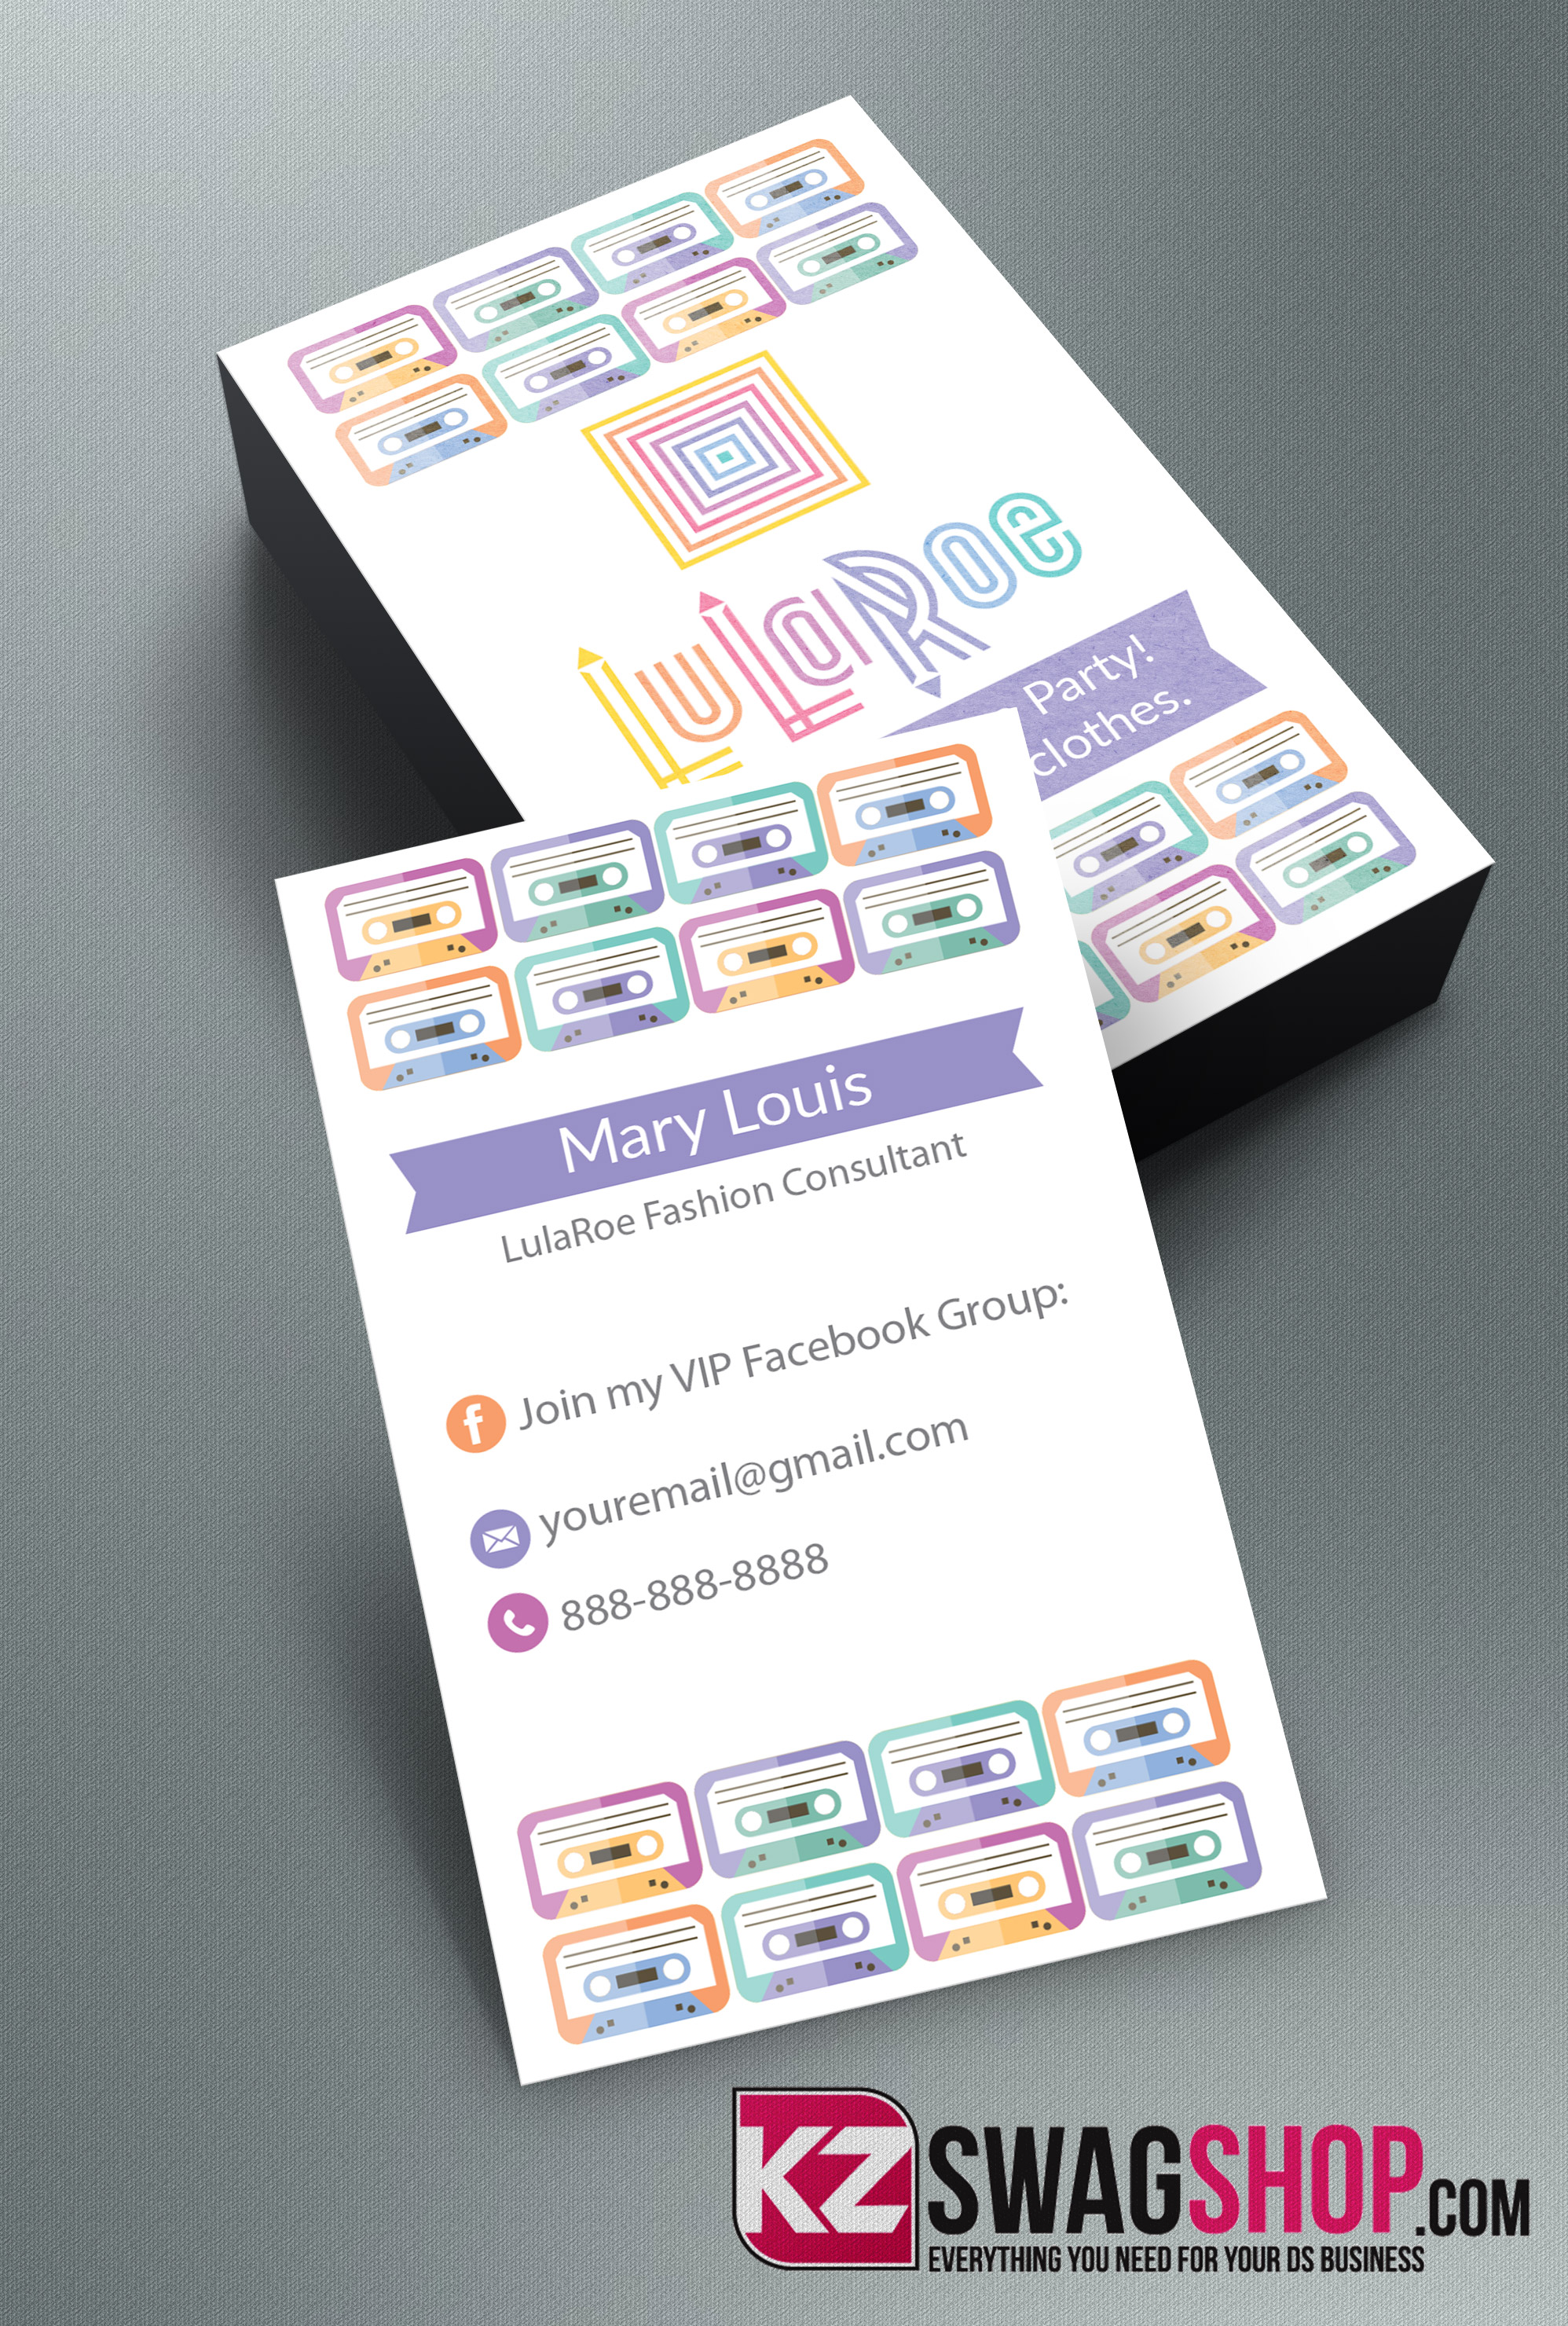 Lularoe business cards 8 kz creative services online store lularoe business cards 8 colourmoves